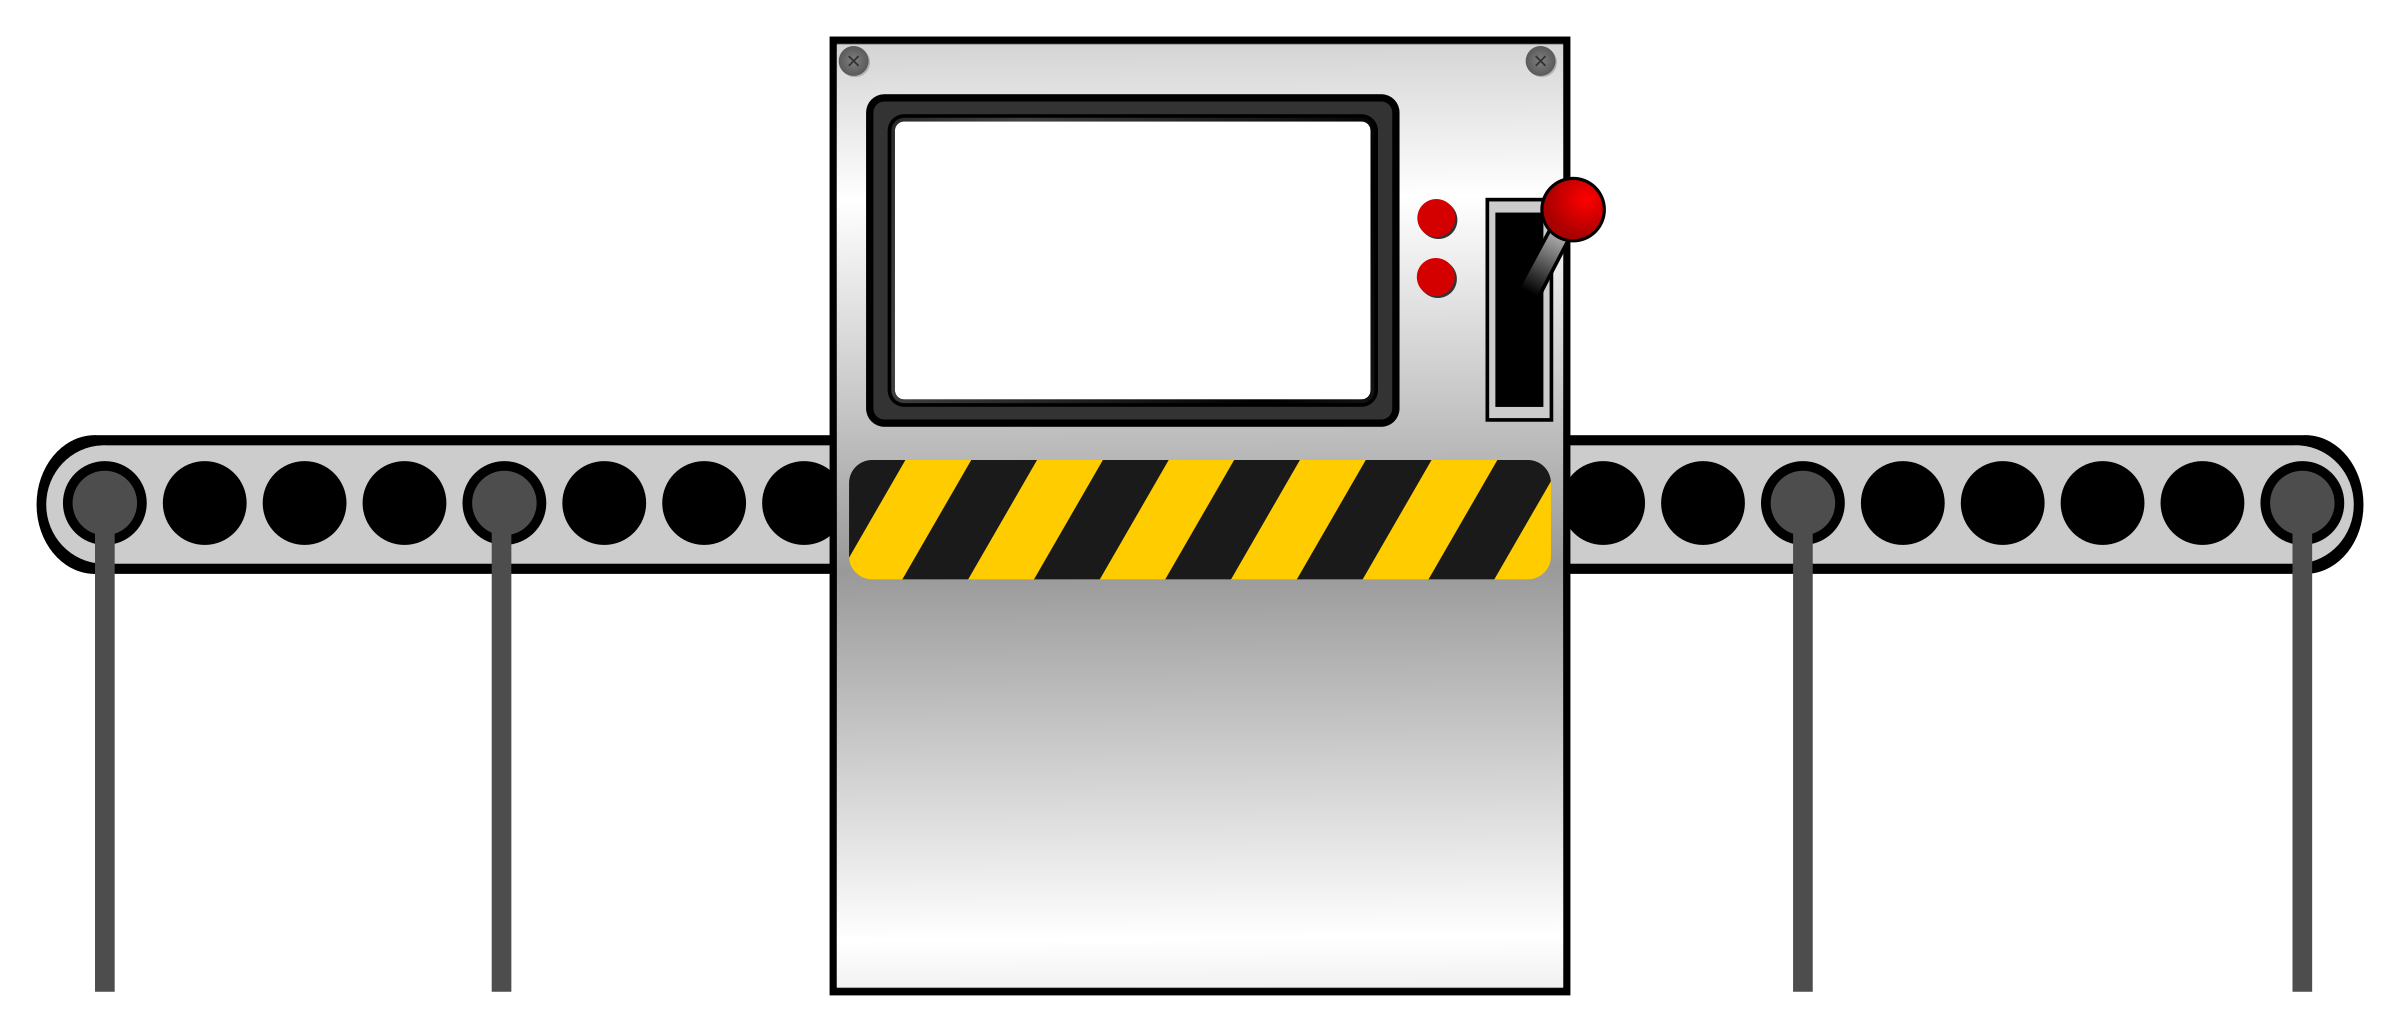 Machine clipart #5, Download drawings